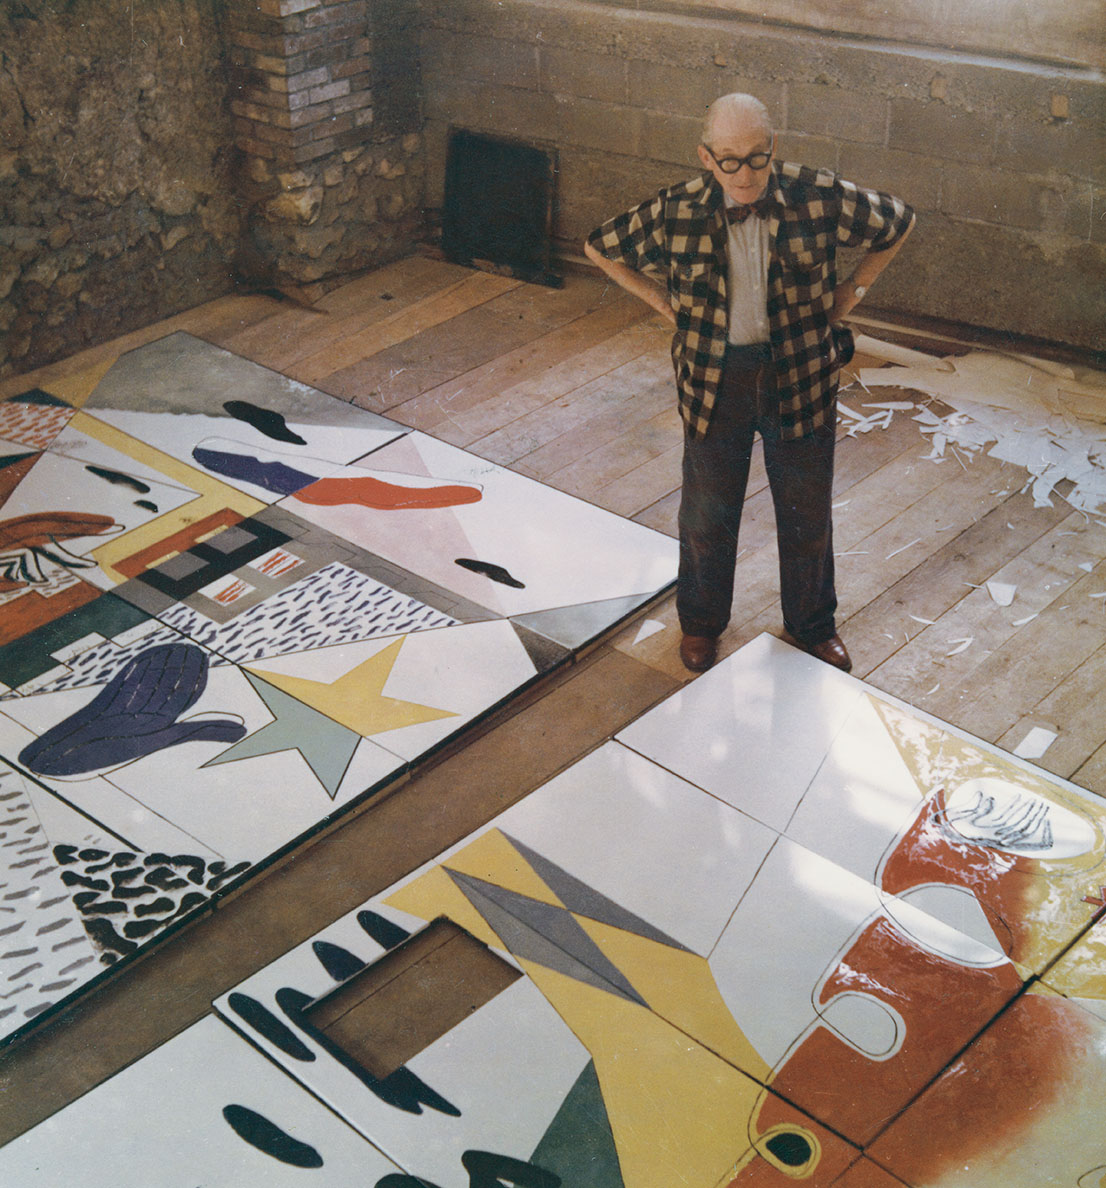 Le corbusier with enamelled door panels for notre dame du haut in ronchamp  france  1955